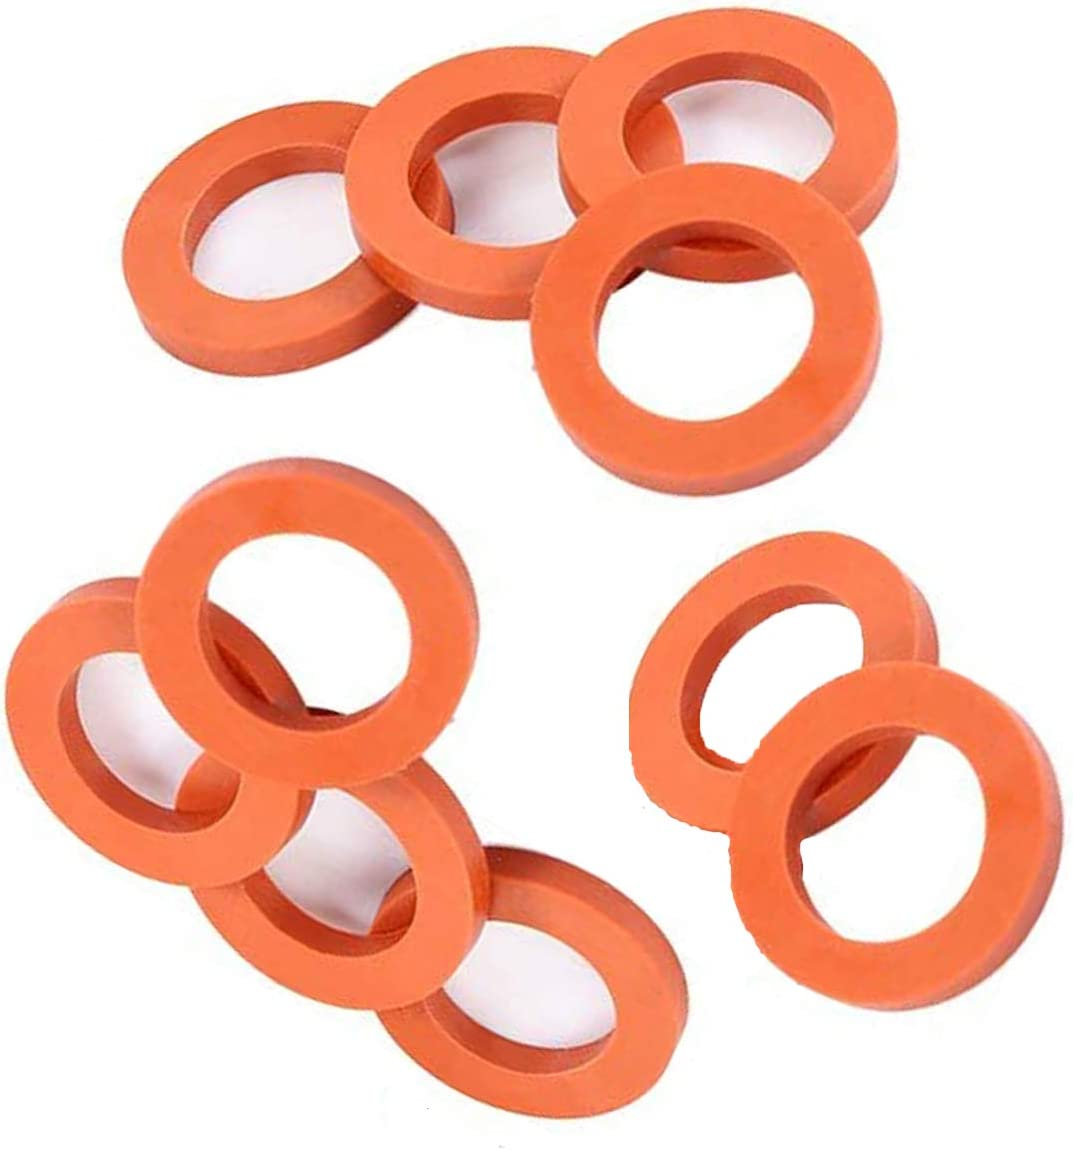 "ONESWI Garden Hose Washer Heavy Duty Rubber Washer Seals, Fit All Standard 3/4"" Garden Hose Fittings"